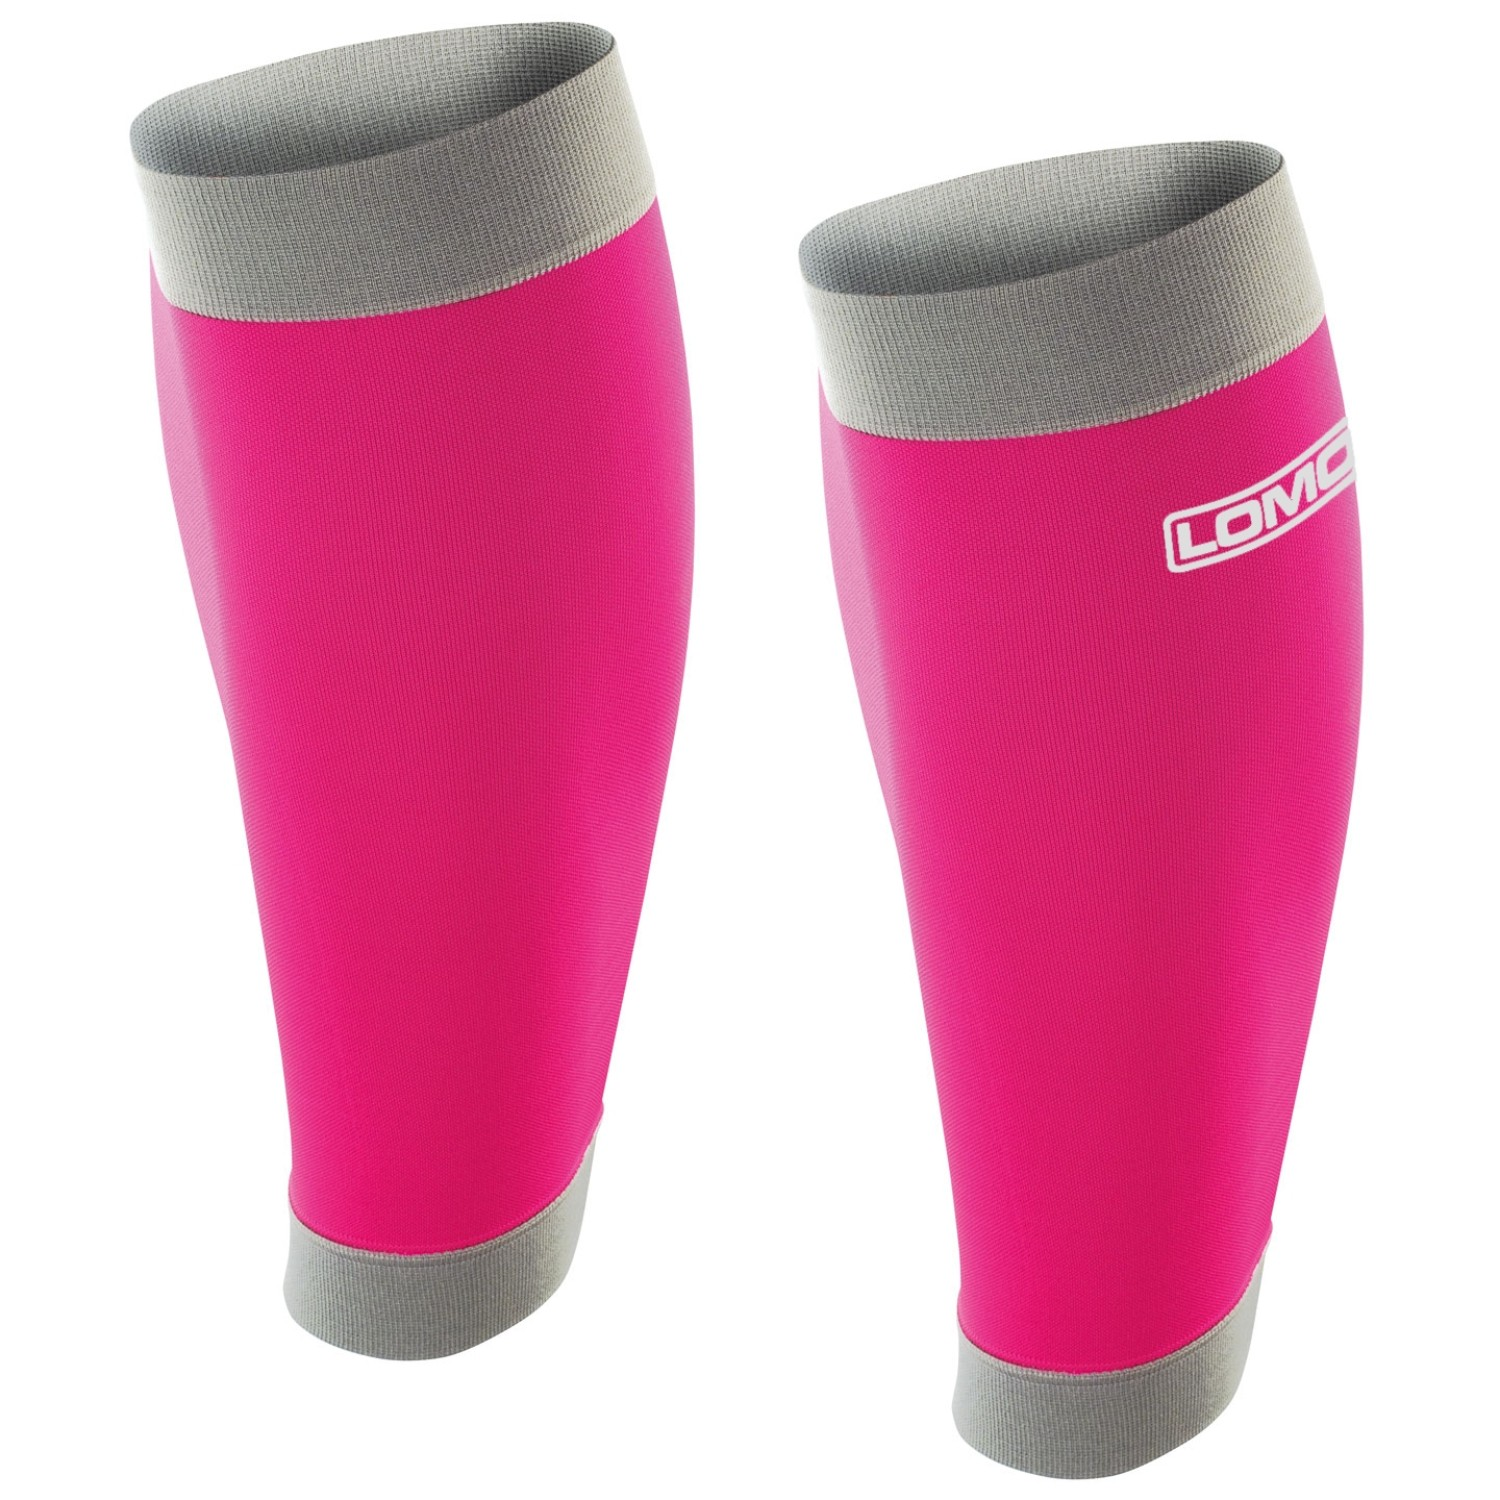 Compression Calf Sleeves - Pink